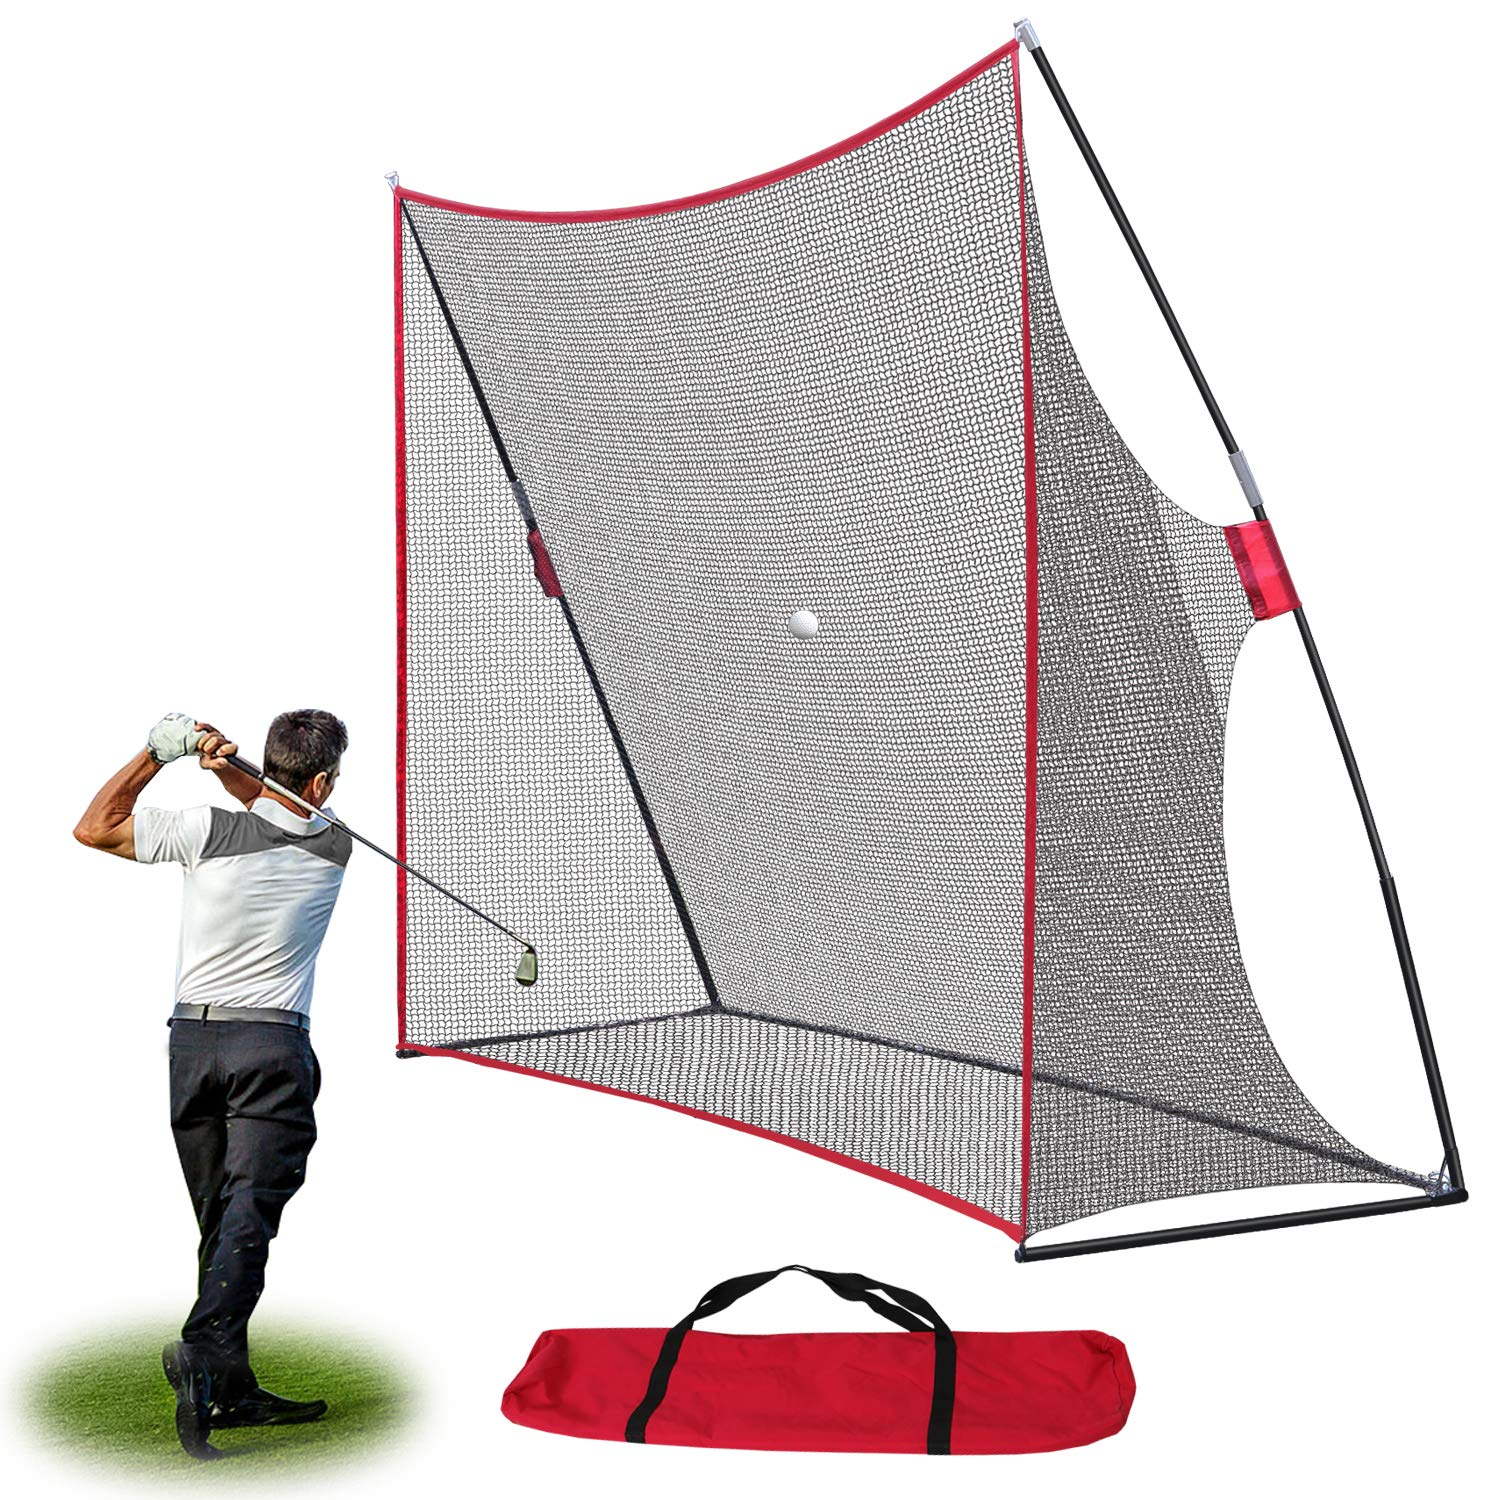 Smartxchoices 10x7ft Large Golf Net Golf Practice Driving Pitching Hitting Training Net w/Carry Bag for Backyard/Indoor/Outdoor by Smartxchoices